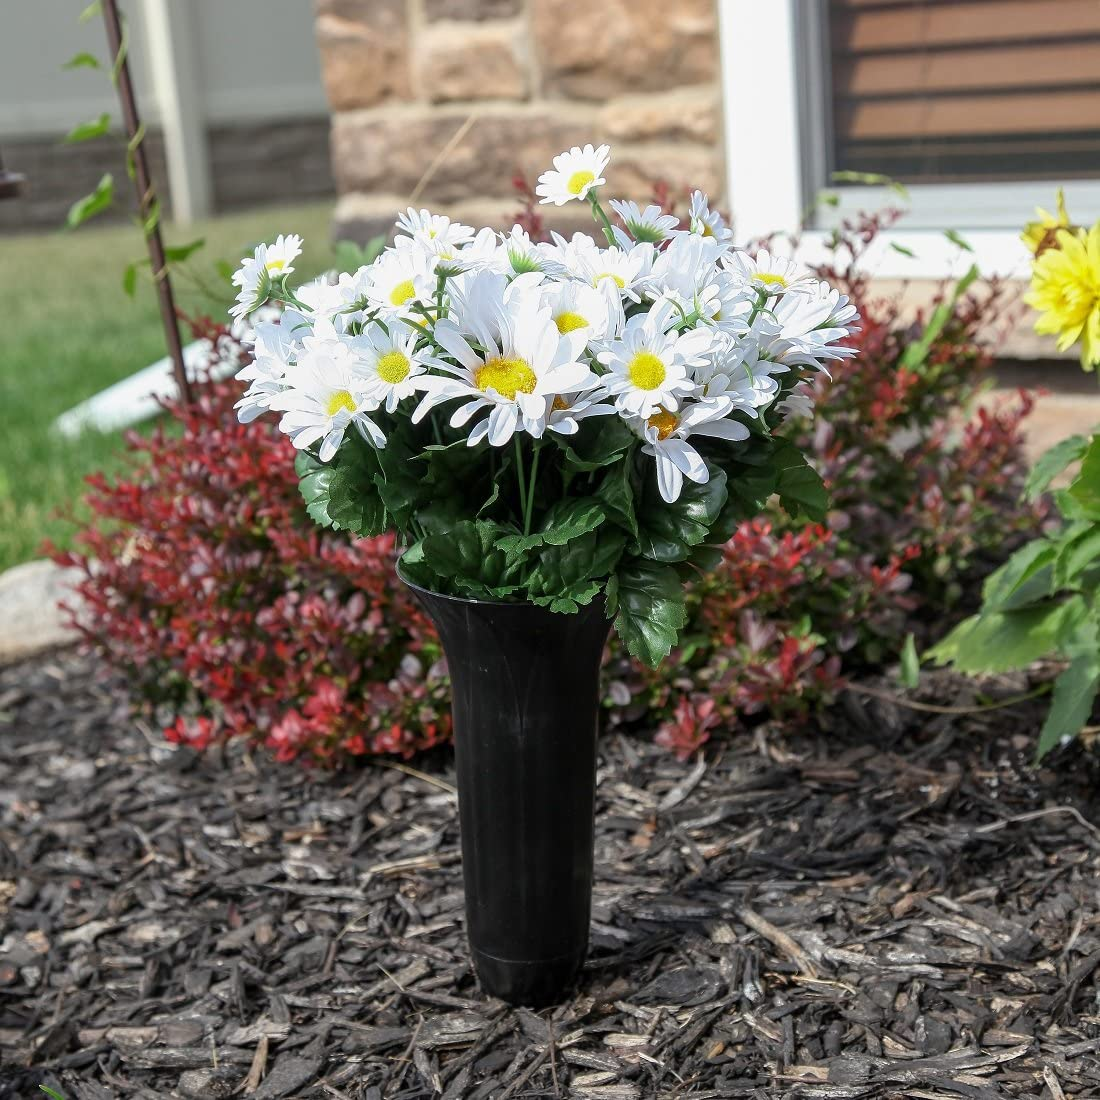 Home-X Fluted Lawn and Garden Vase Stake In Ground Vase for Lawn or Memorial